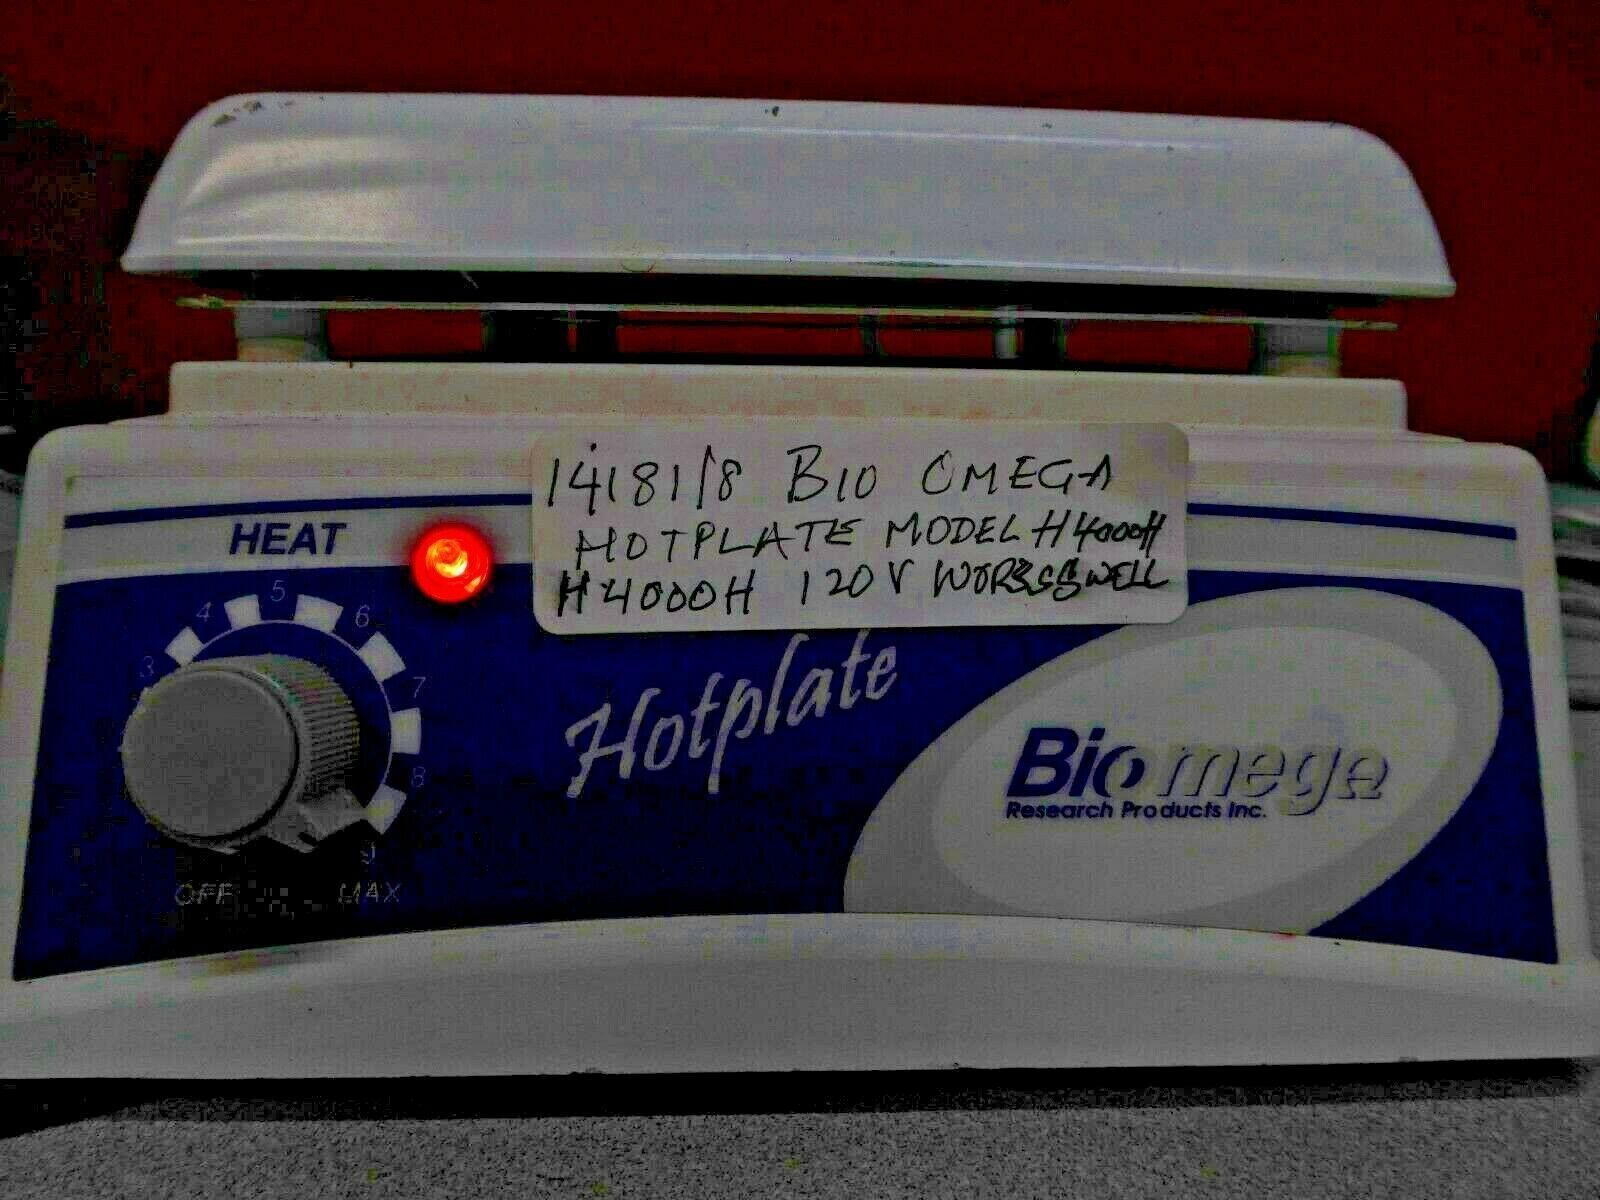 Biomega hotplate H4000-H with Ceramic top  in exc working cond tested 14181/8